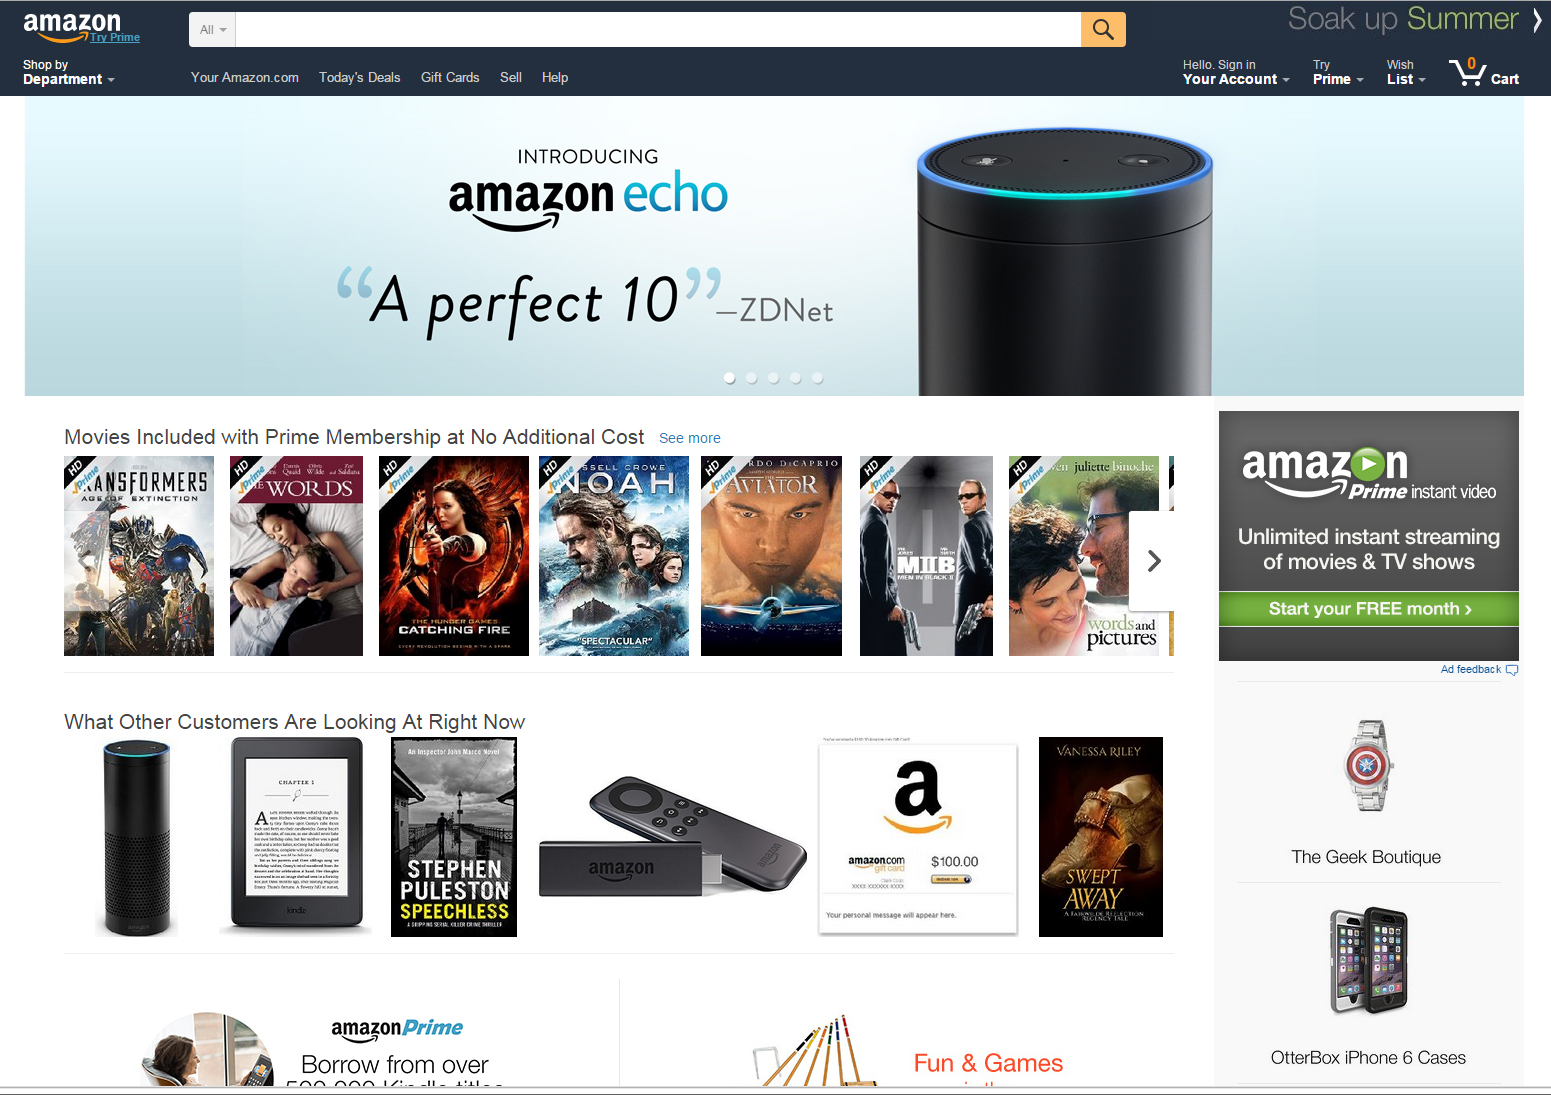 amazon homepage screencap